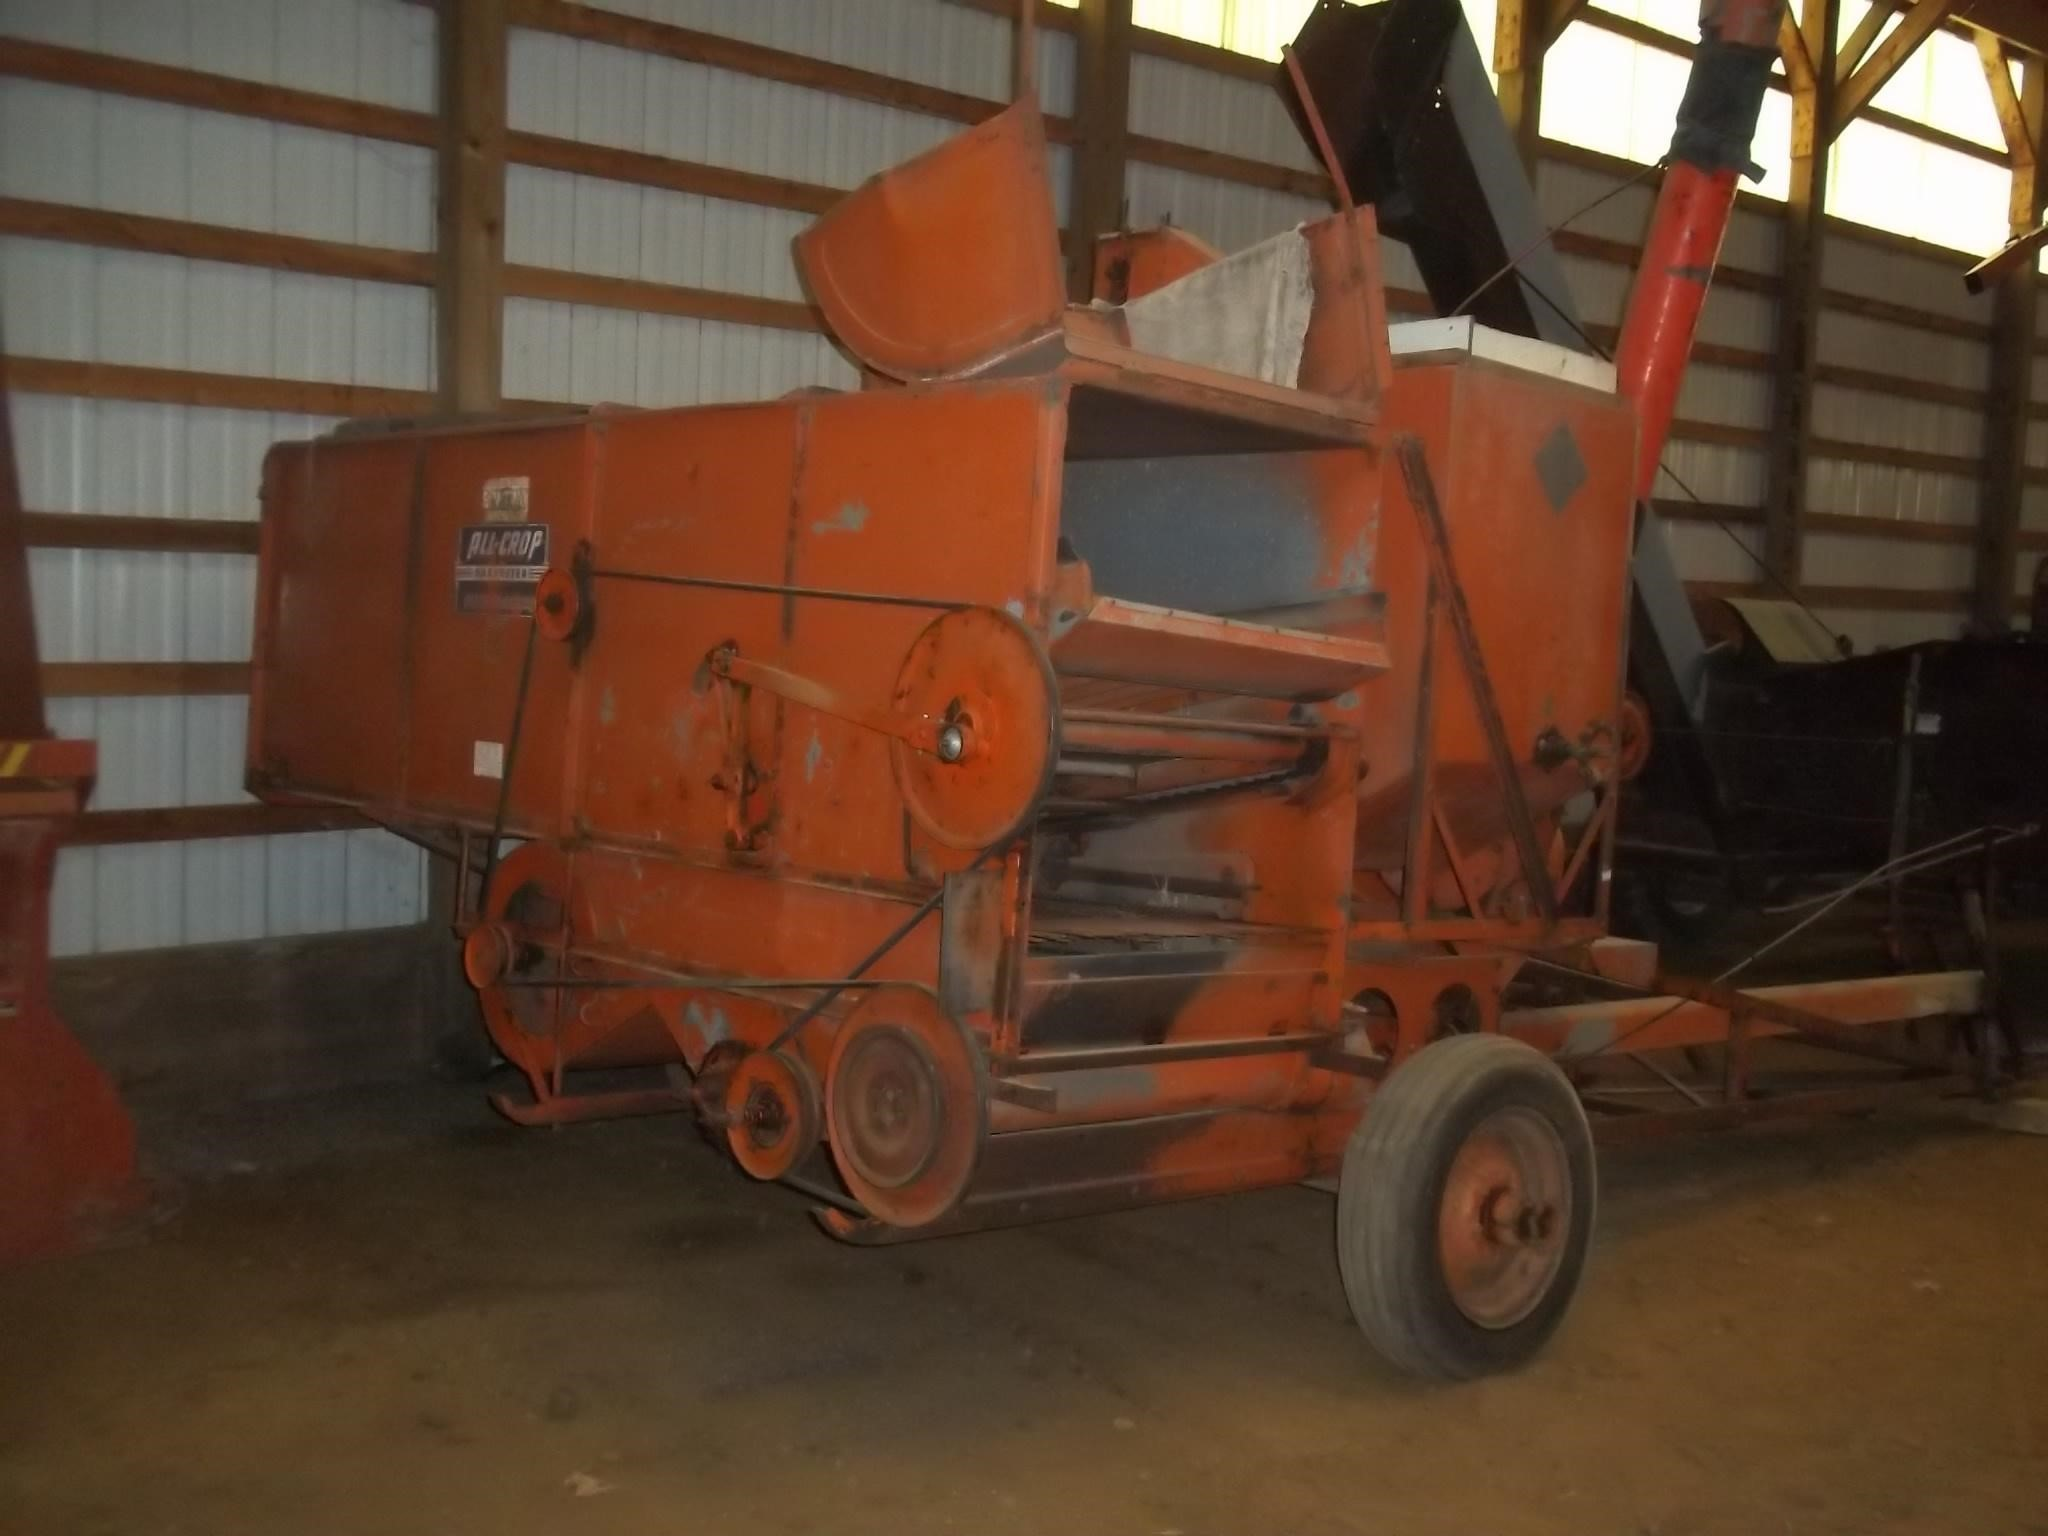 1952 Allis Chalmers 60 Pull-Type Forage Harvester